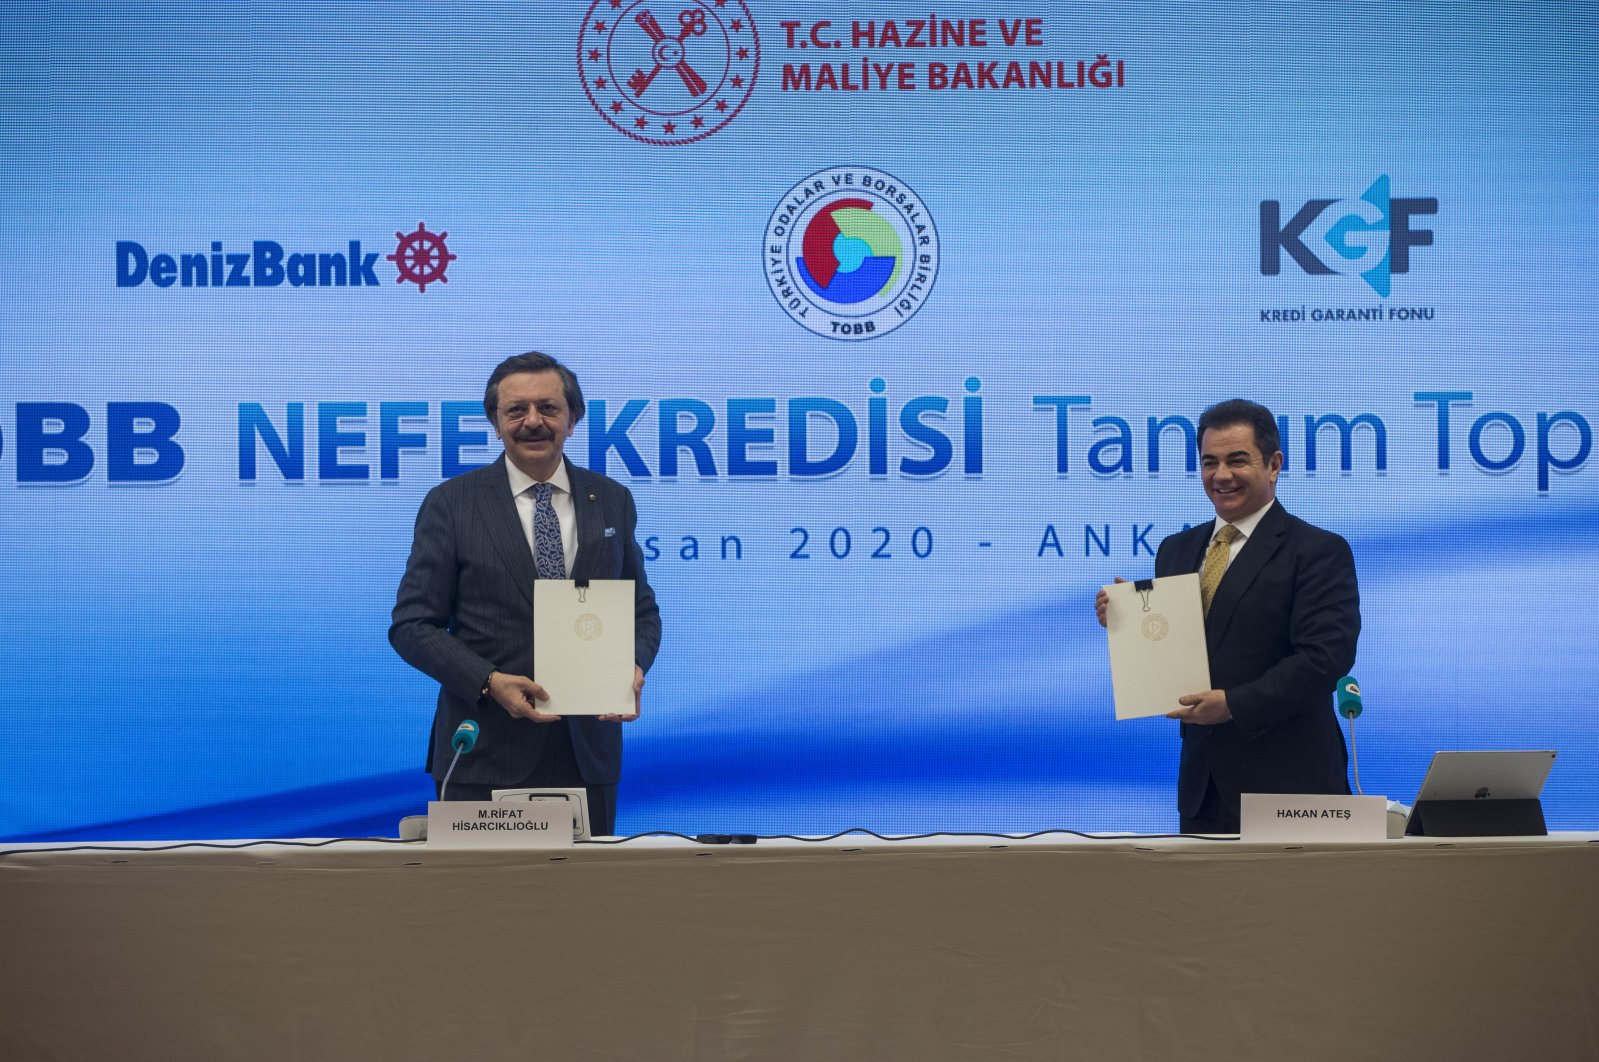 Union of Chambers and Commodity Exchanges of Turkey (TOBB) Chairman Rifat Hisarcıklıoğlu (L) and Denizbank CEO Deniz Ateş attend the launching ceremony of the loan package for SMEs, Ankara, Monday, April 27, 2020. (AA Photo)